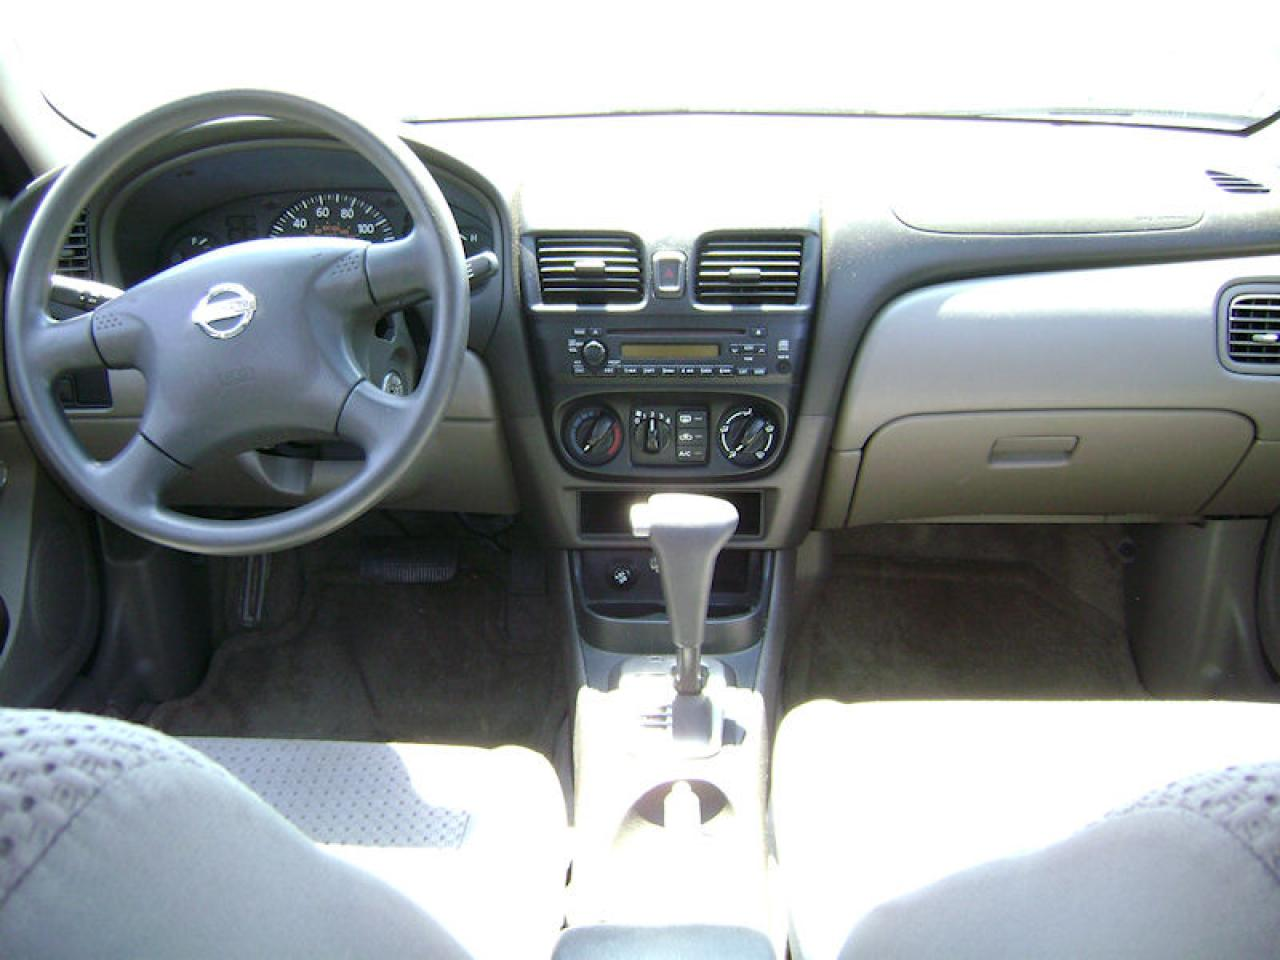 2004 Nissan Sentra - Information and photos - ZombieDrive